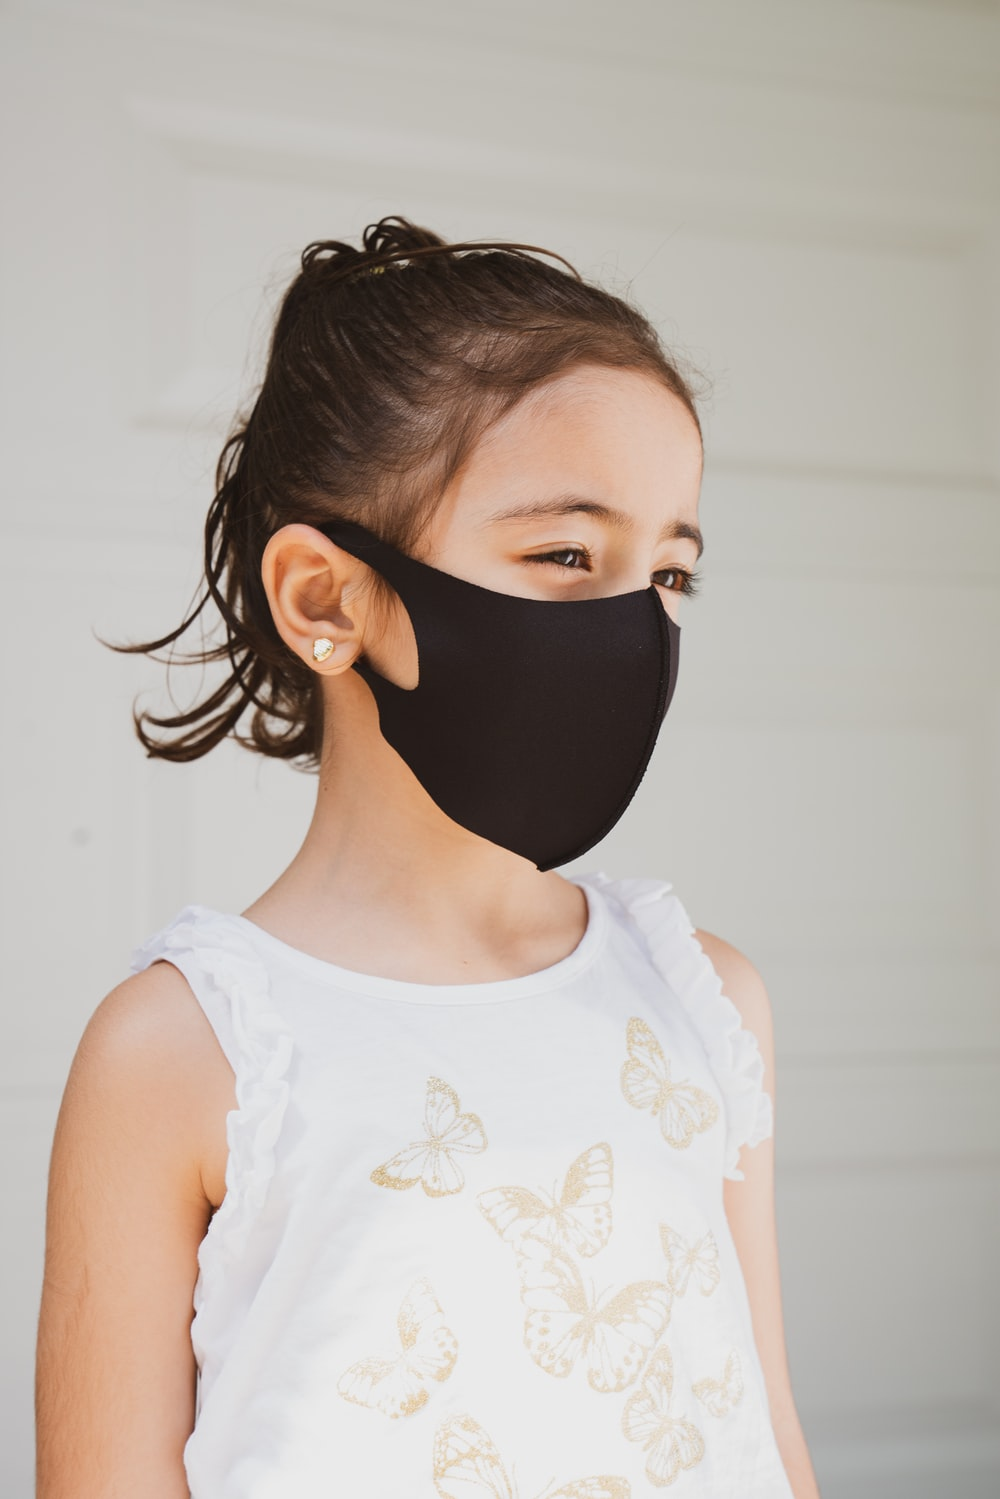 woman in white floral tank top wearing black mask